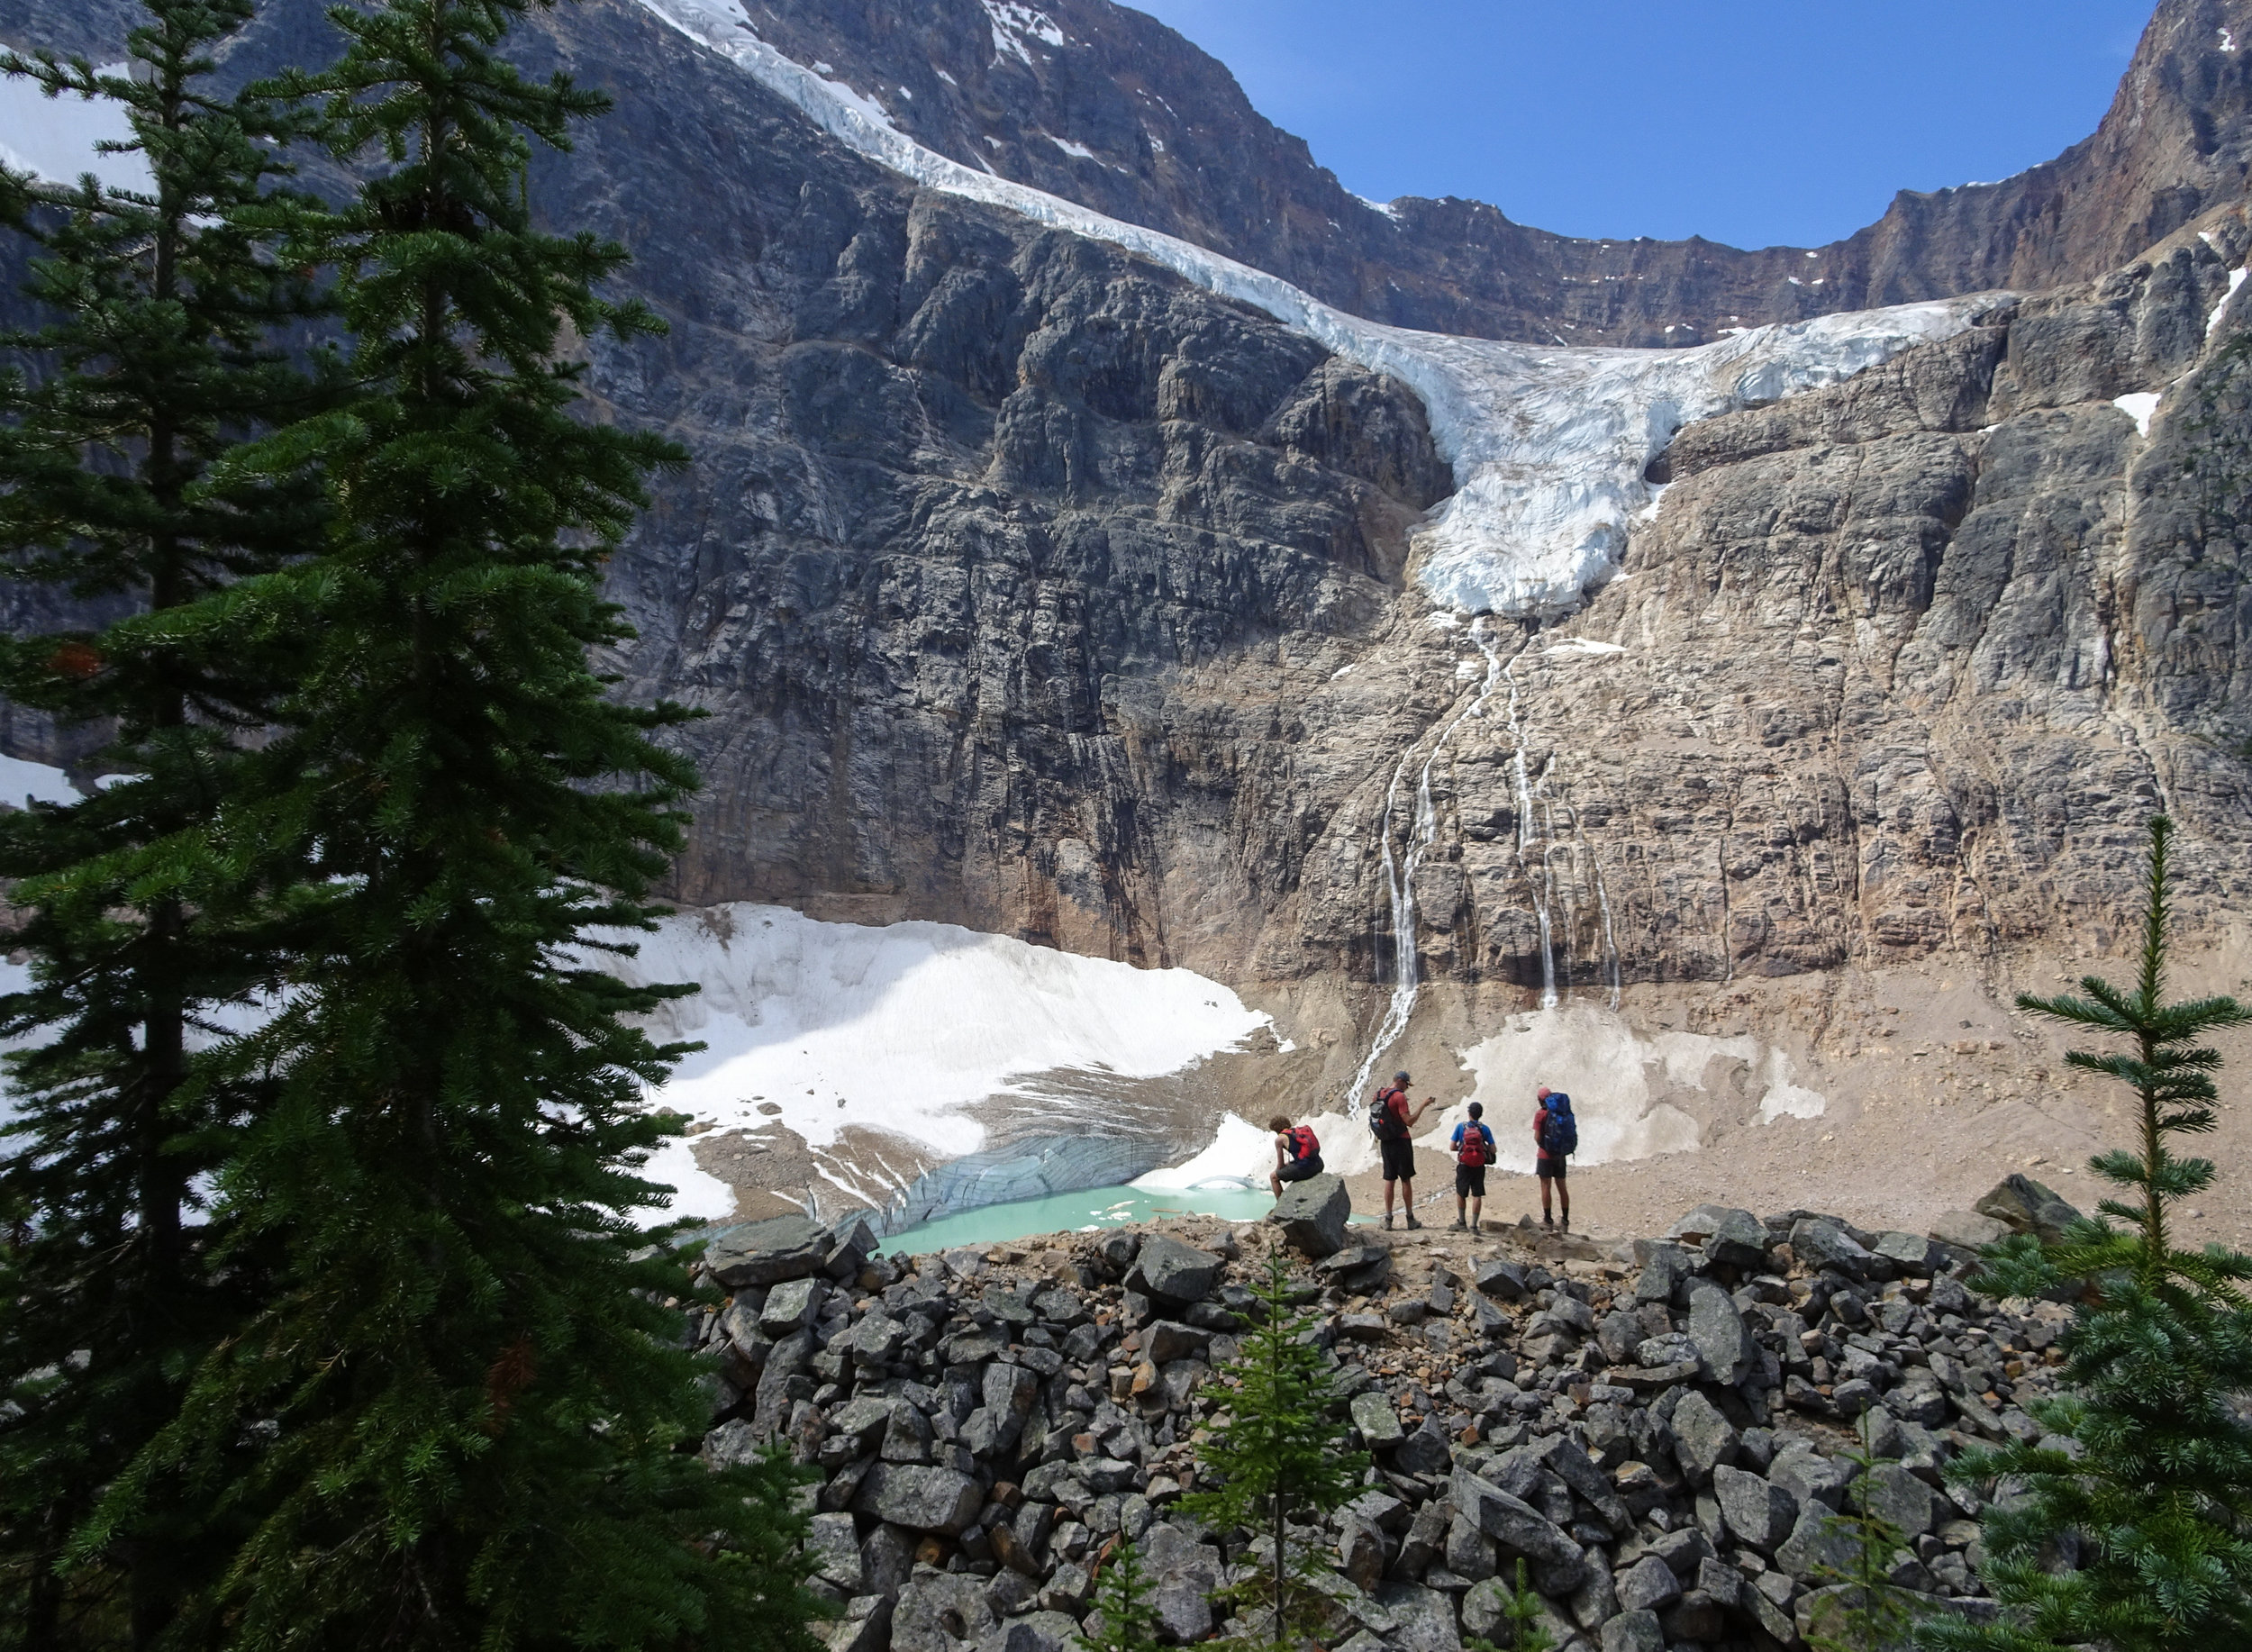 Angel Glacier Viewpoint